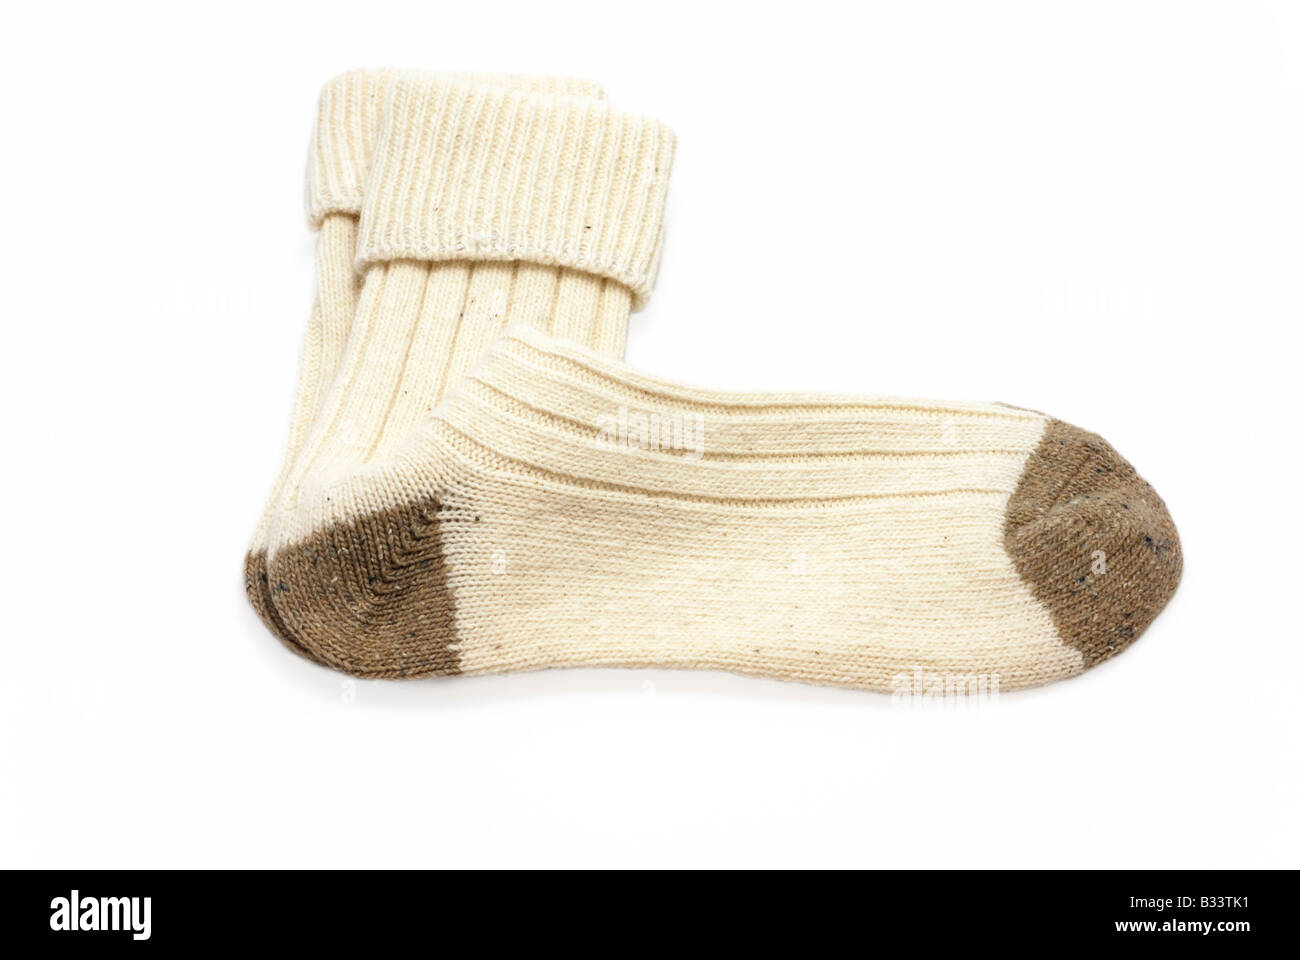 Pair of Off-white Wool Socks - Stock Image